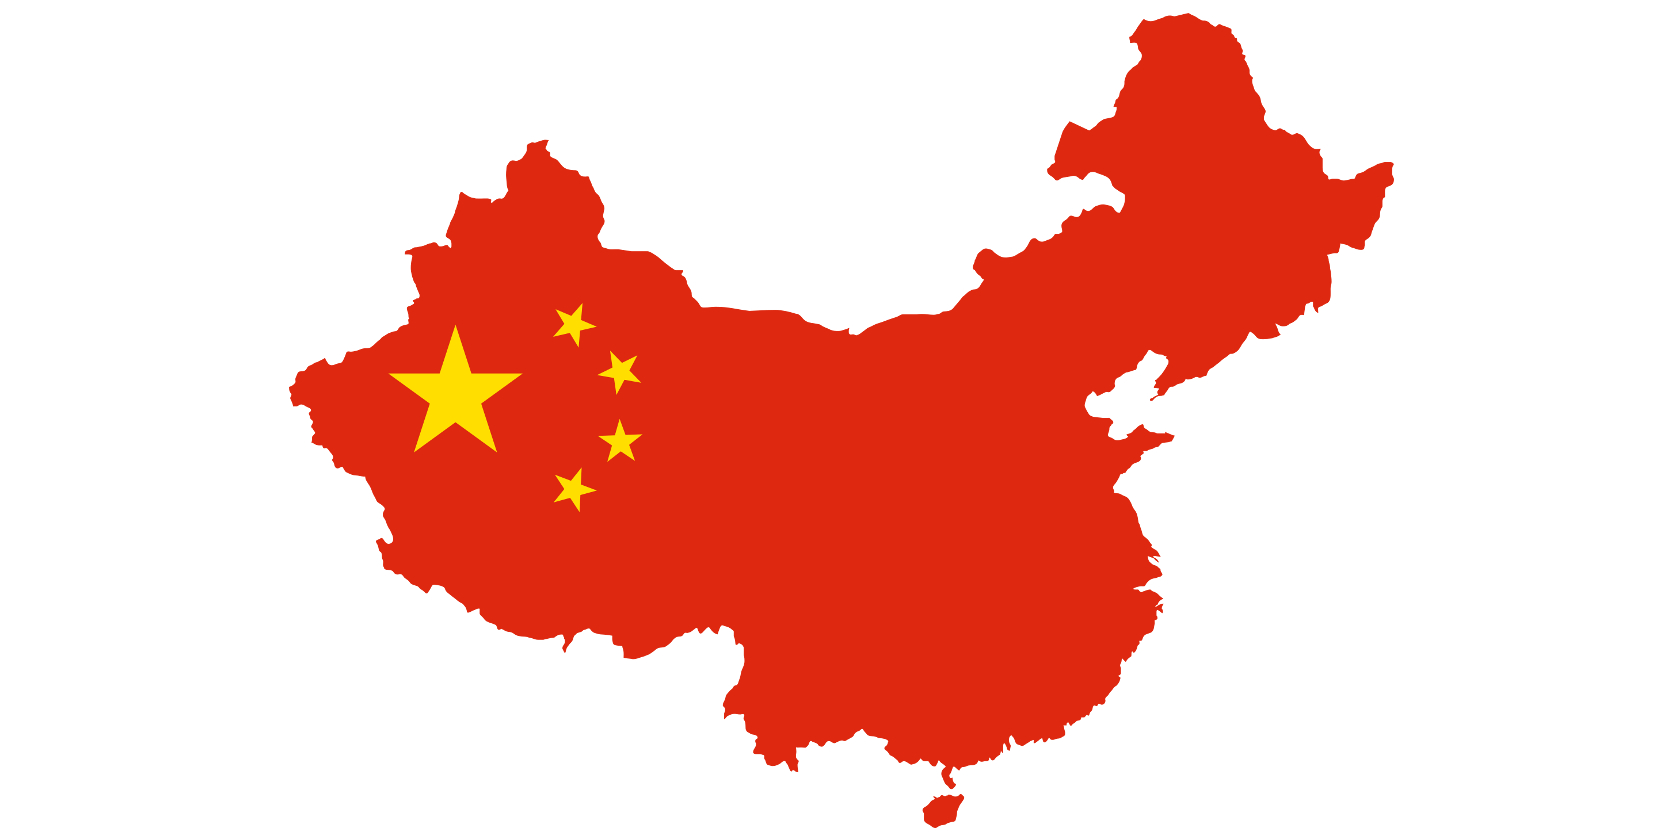 CCGC President Discusses Growth Strategy Through China's 13th Five-Year Plan